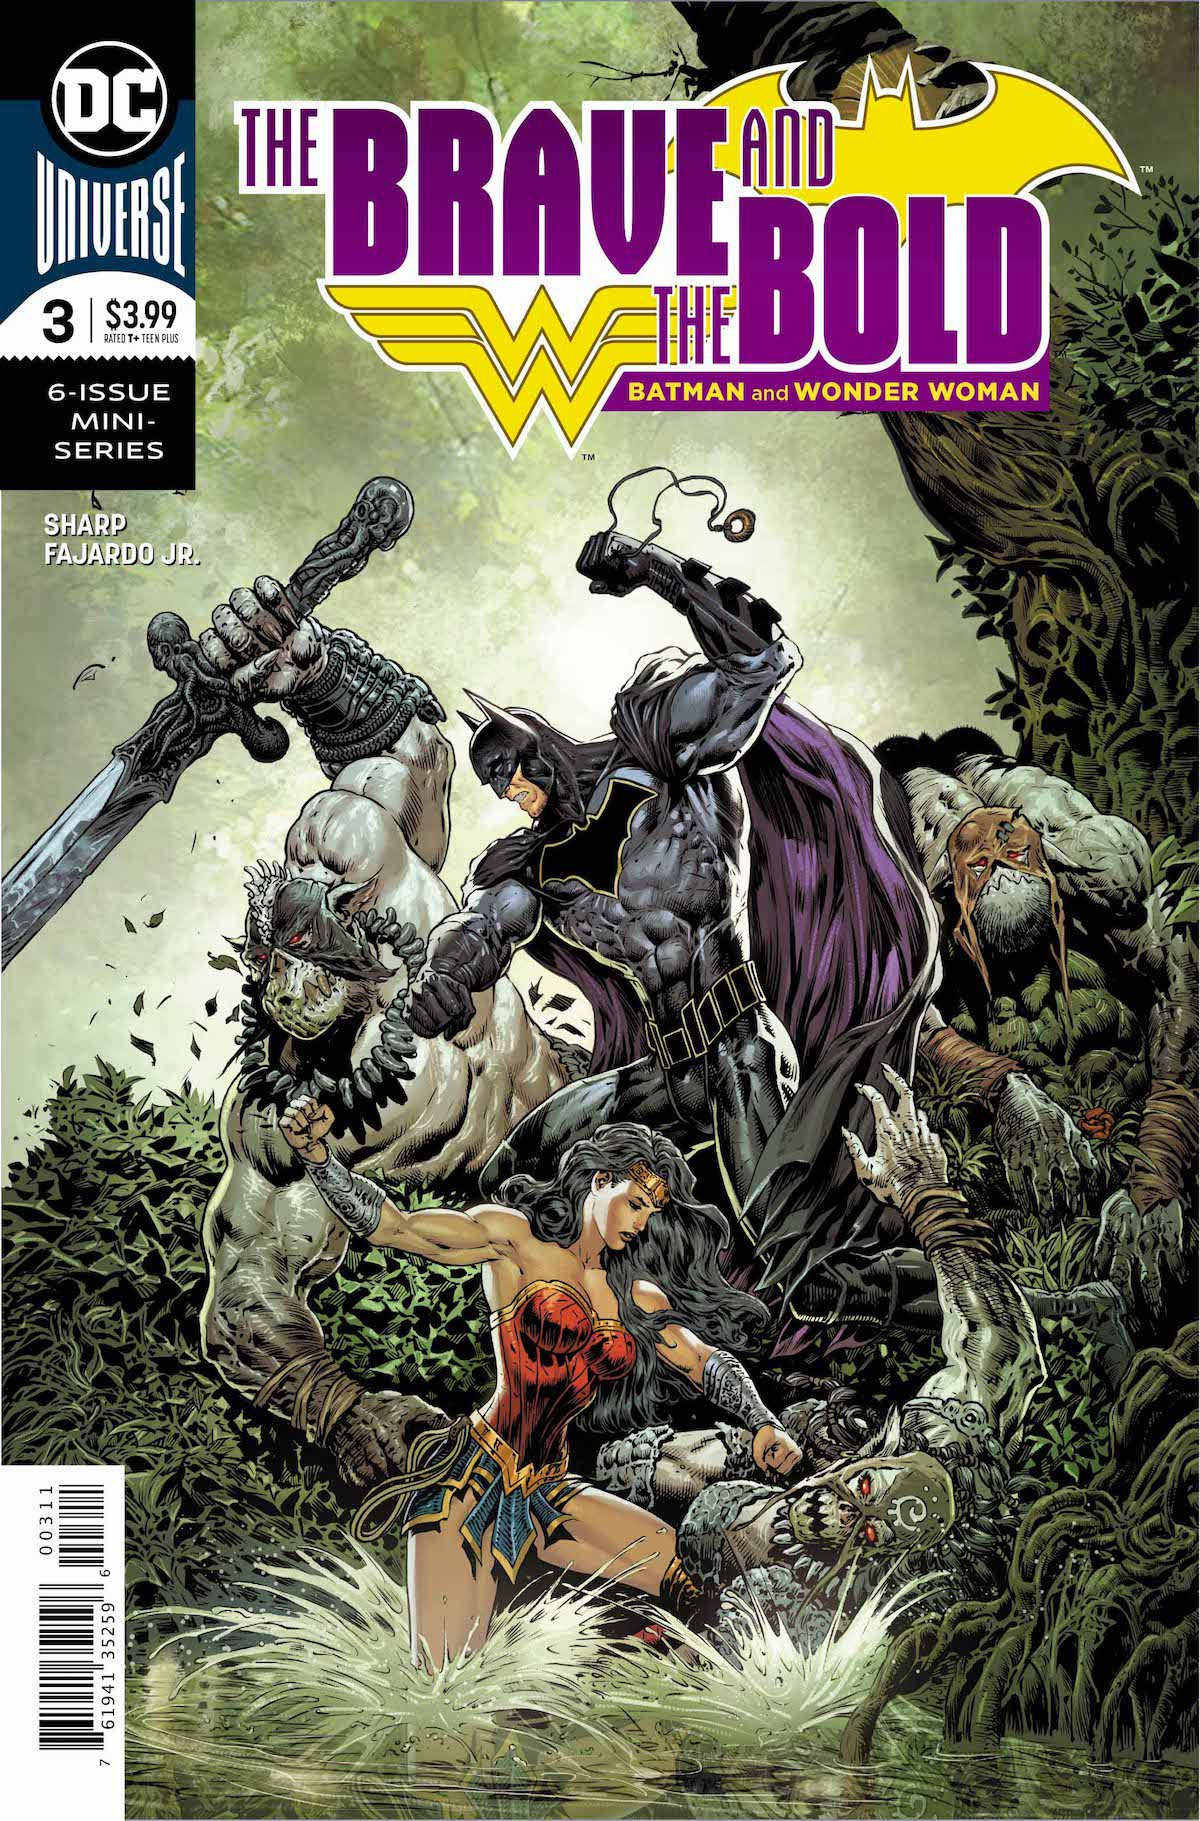 Brave and the Bold Batman and Wonder Woman #3 cover